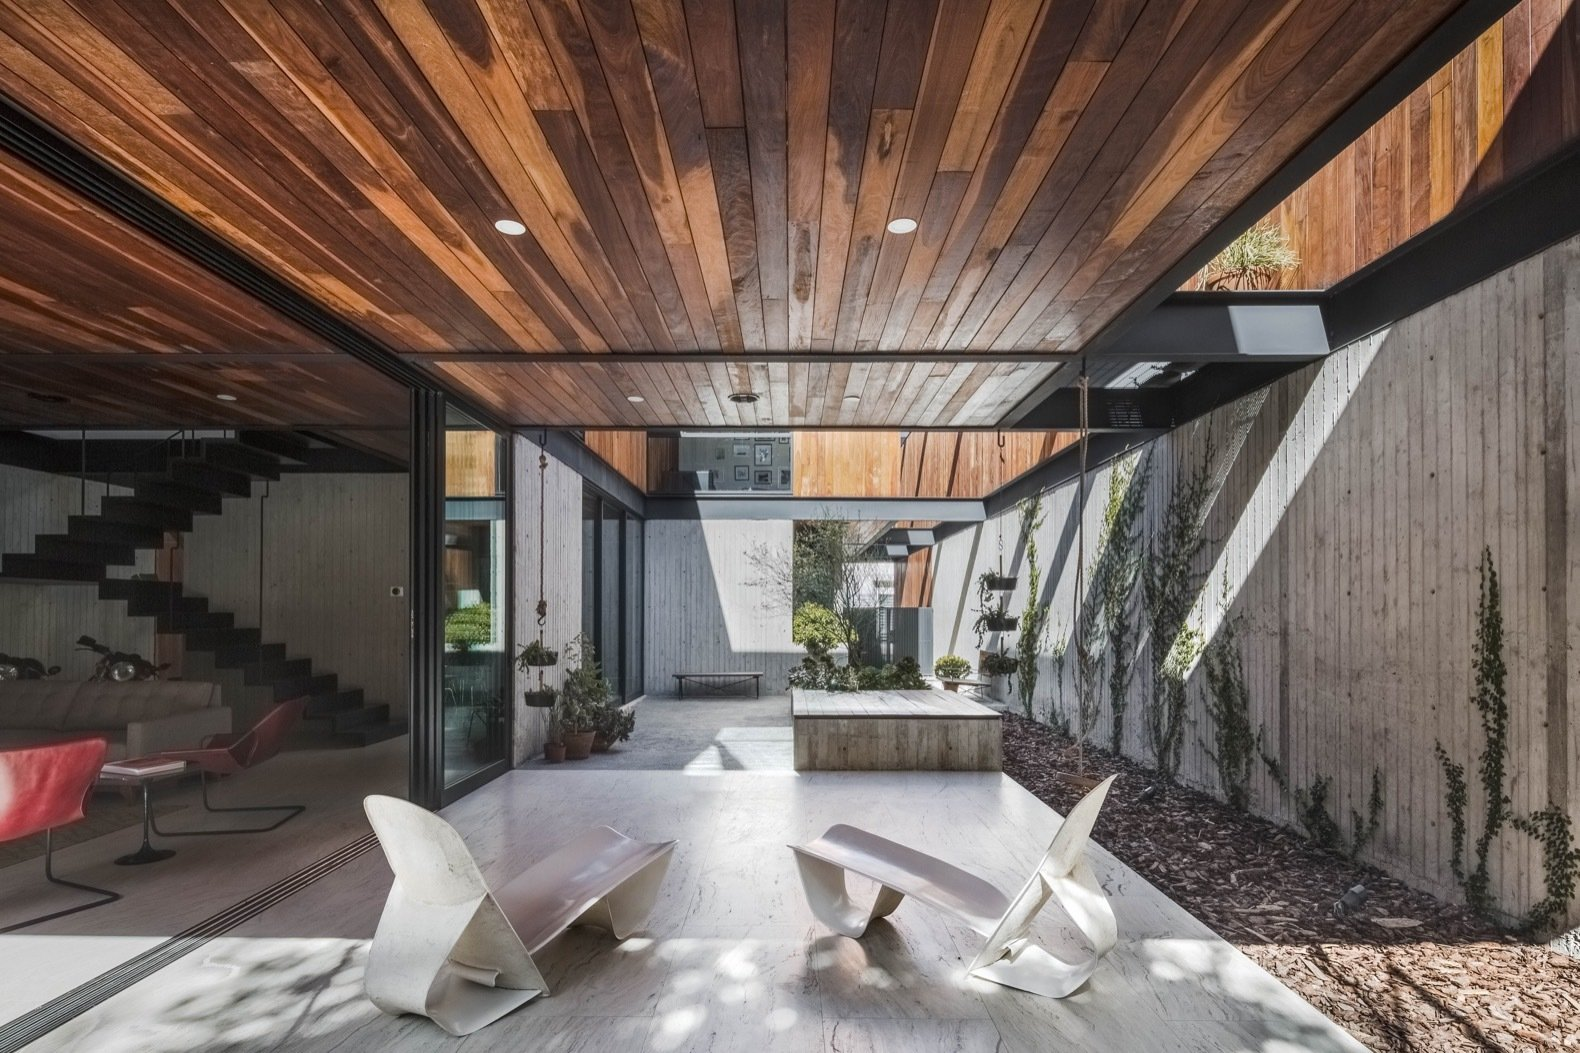 Outdoor, Trees, Gardens, Concrete, Large, Back Yard, Hardscapes, Tile, and Concrete The open voids in the home give the property its beautiful, breezy character.    Best Outdoor Tile Gardens Photos from A Modern Mexican Home Rises With Vertical Timber Cladding